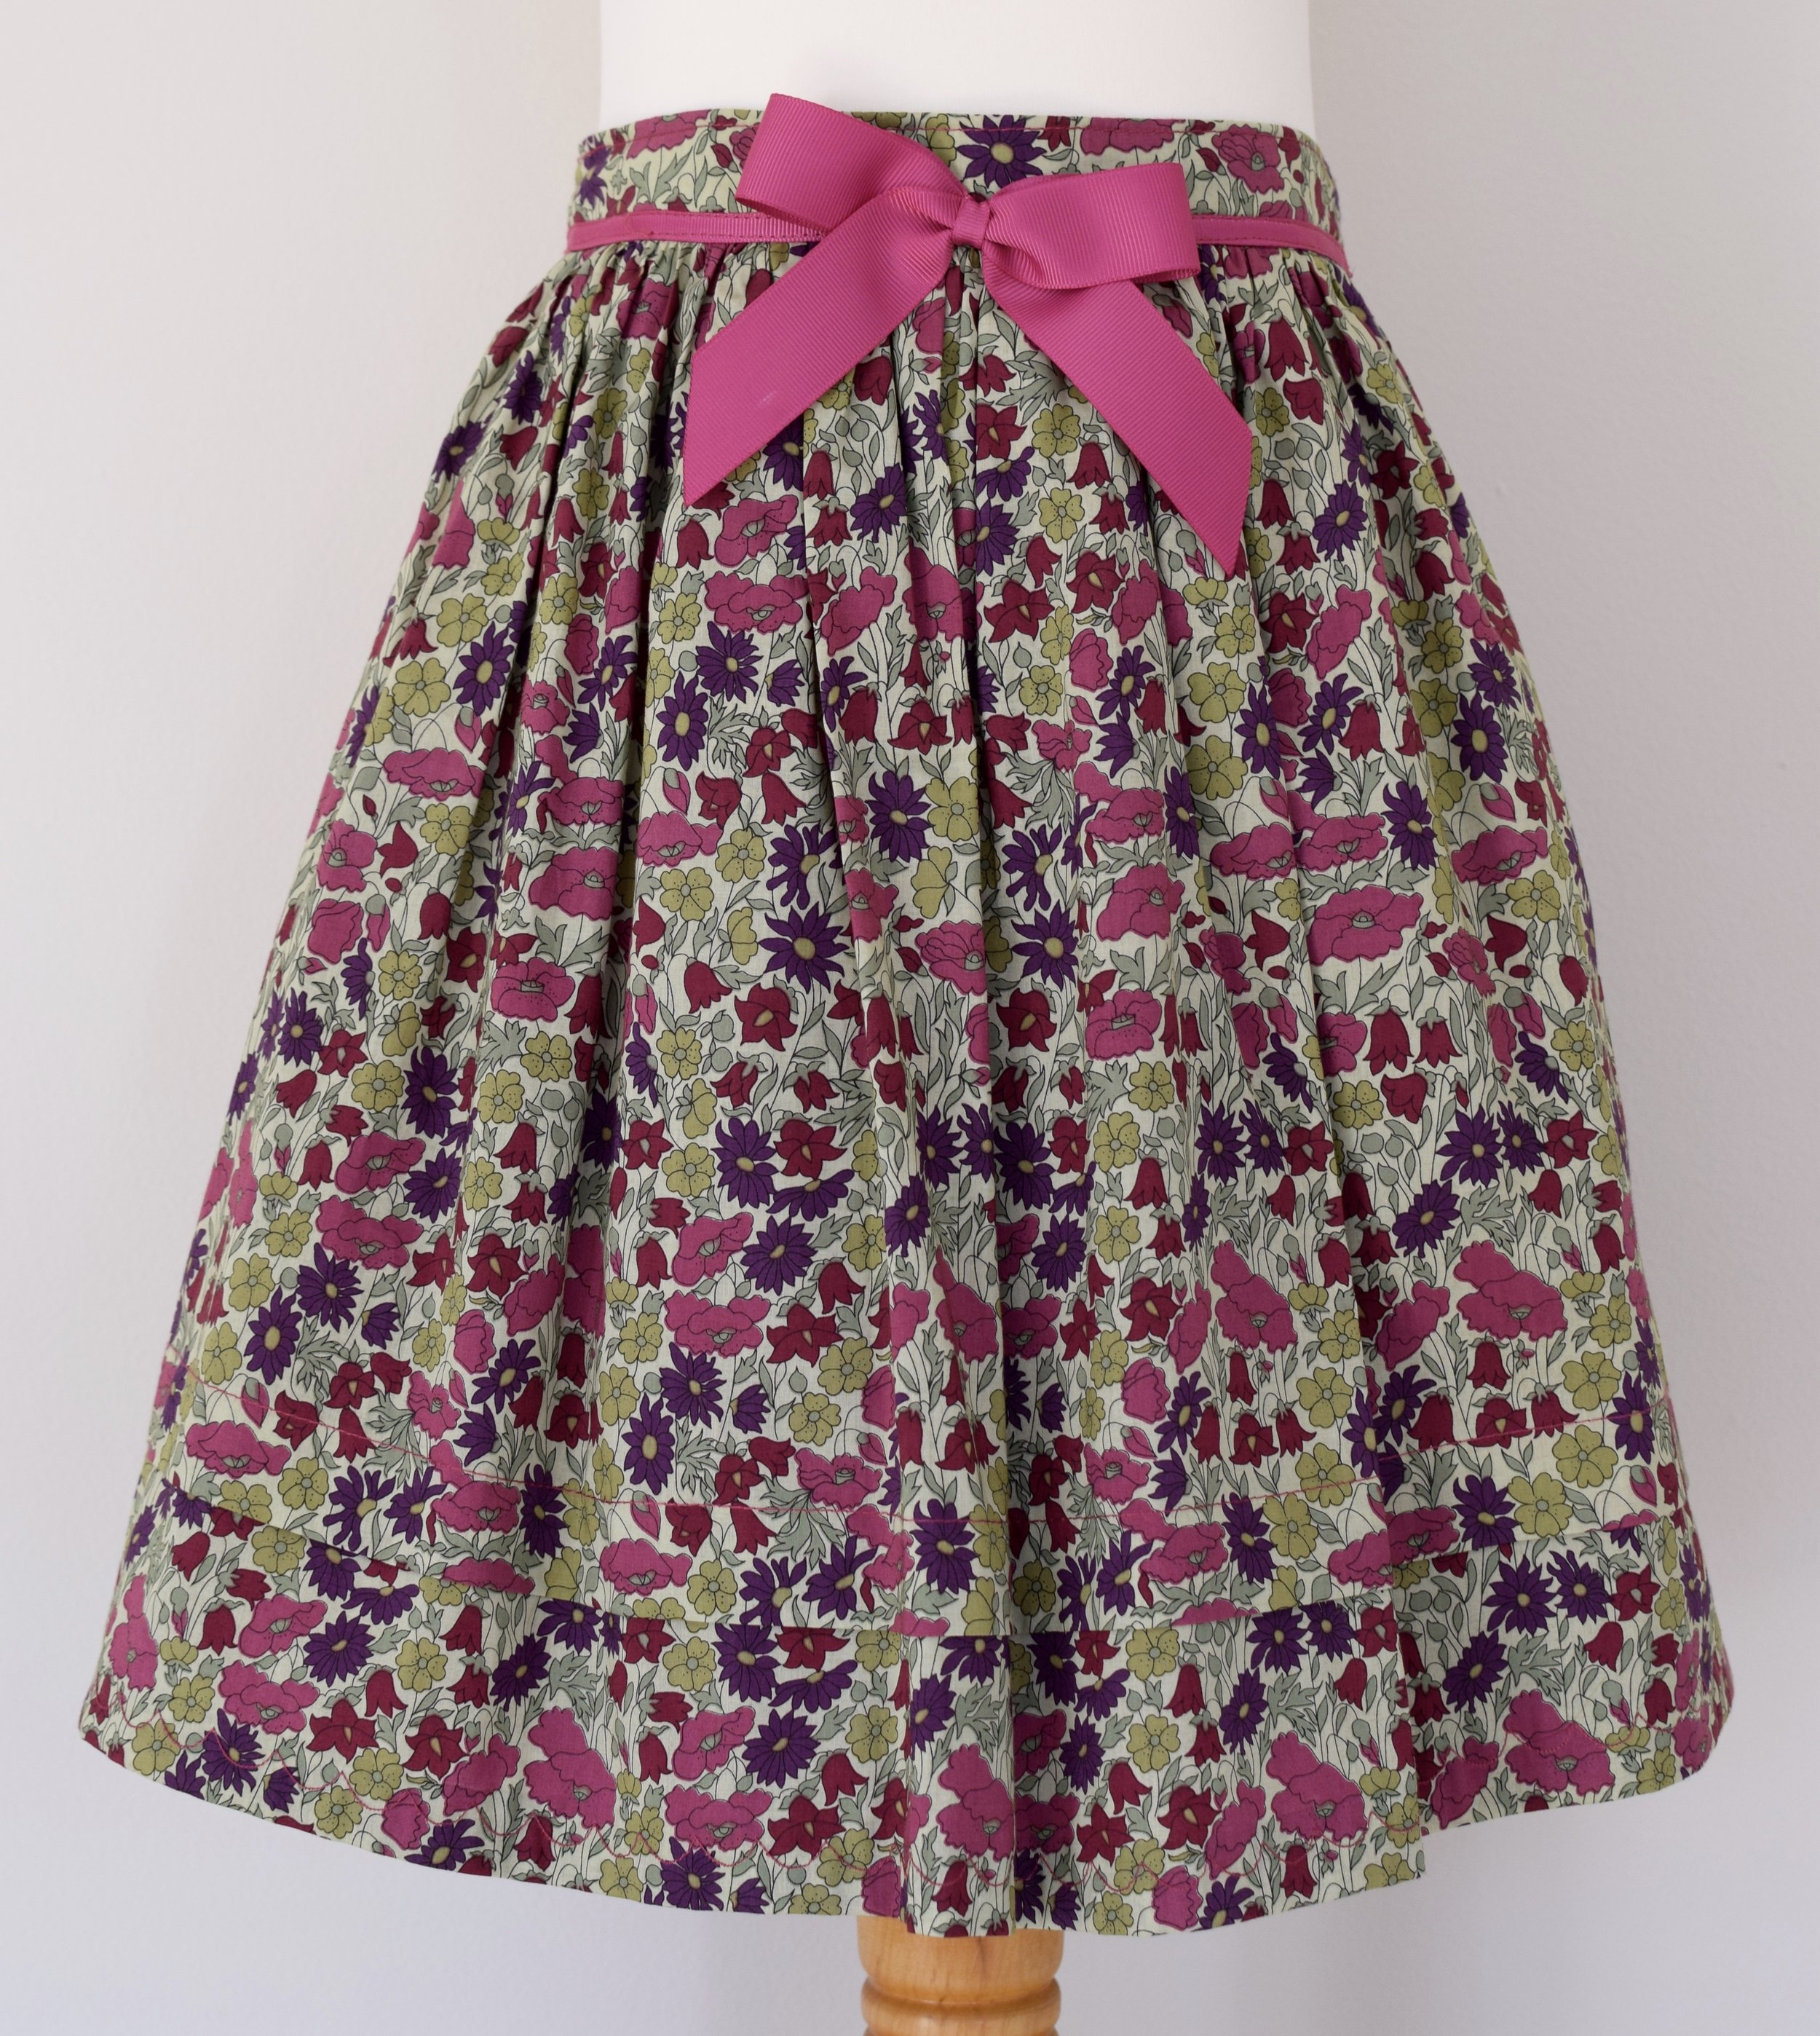 Poppy & Daisy skirt   Description: gathered skirt, contrasting pink grosgrain ribbon bow, concealed zip at back, adjustable elastic waist  Sizes: SOLD OUT  £34